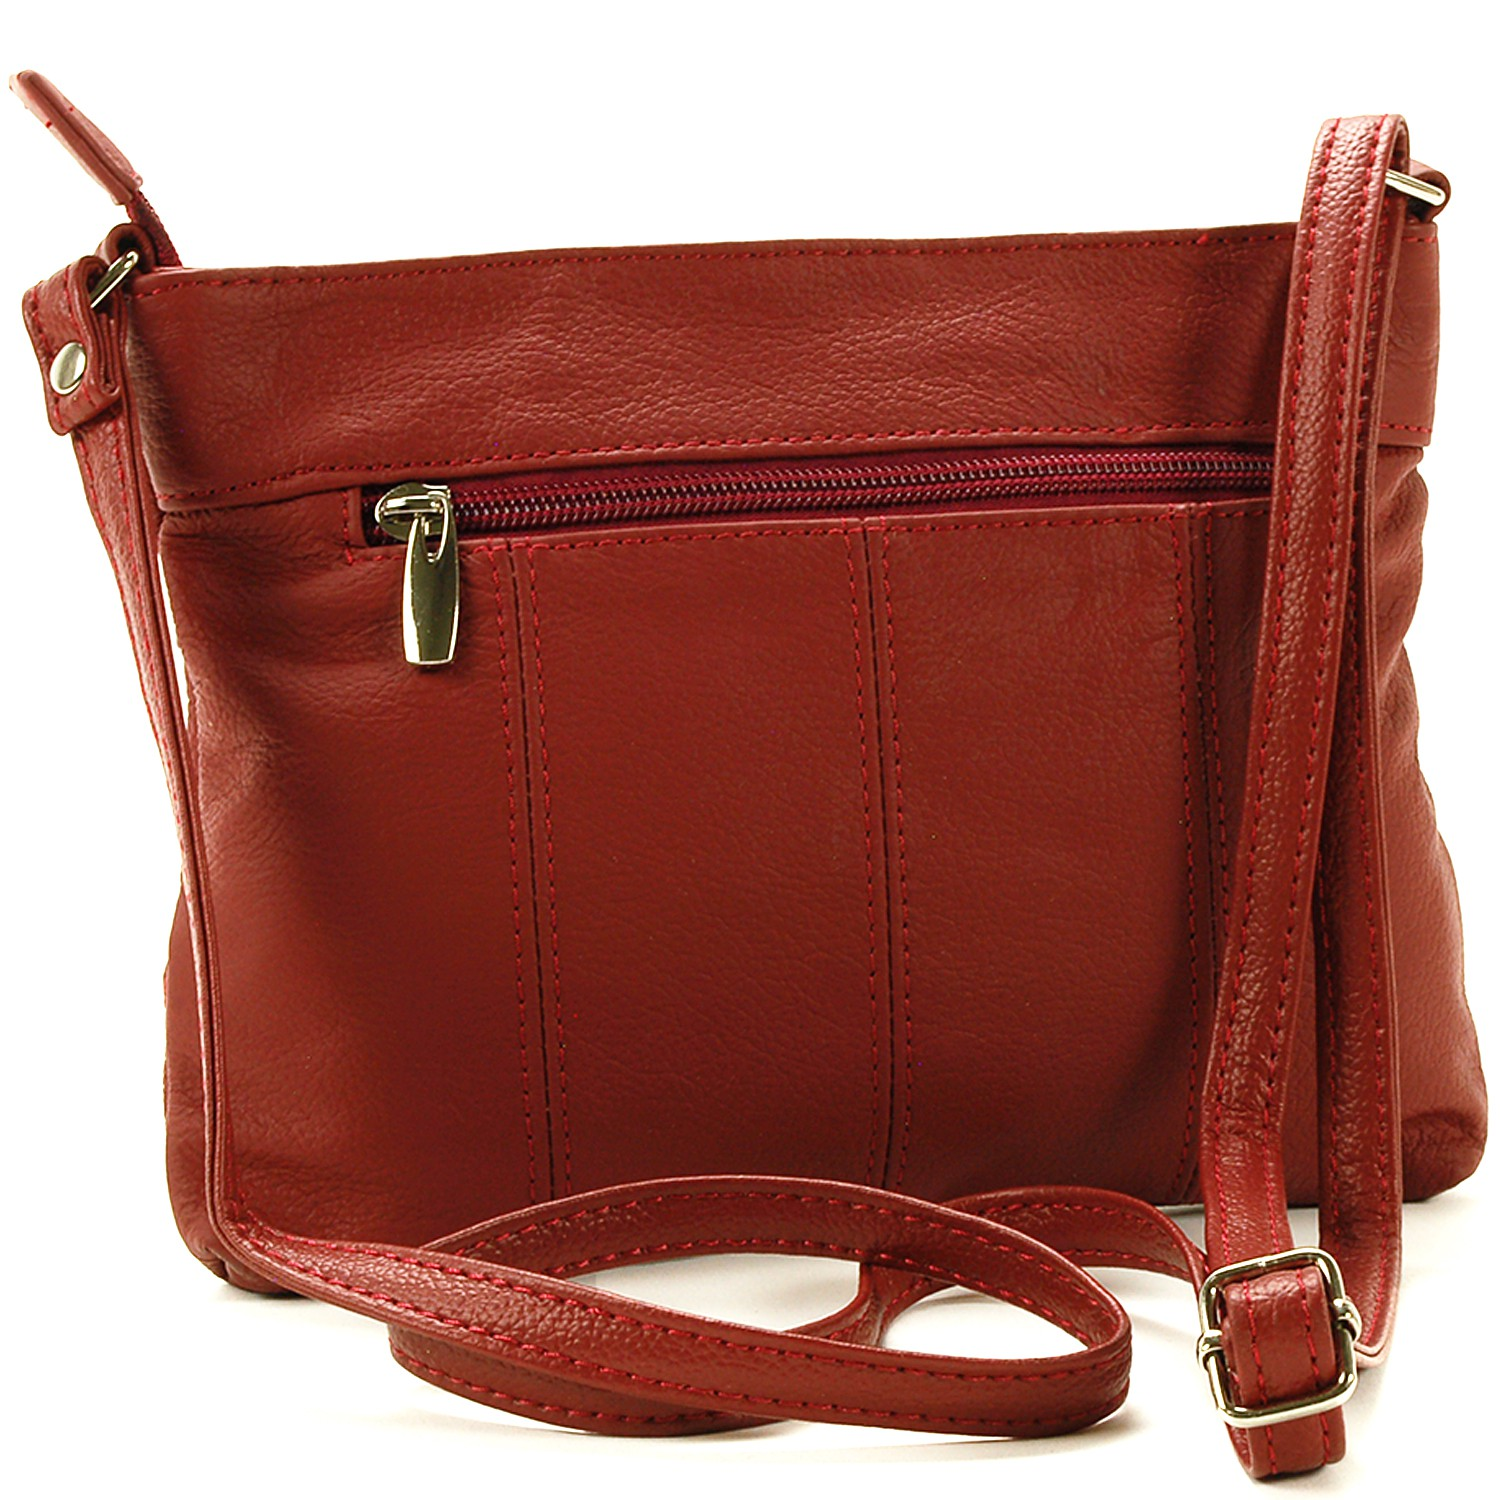 Women's Genuine Leather Handbag Cross Body Bag Shoulder ...